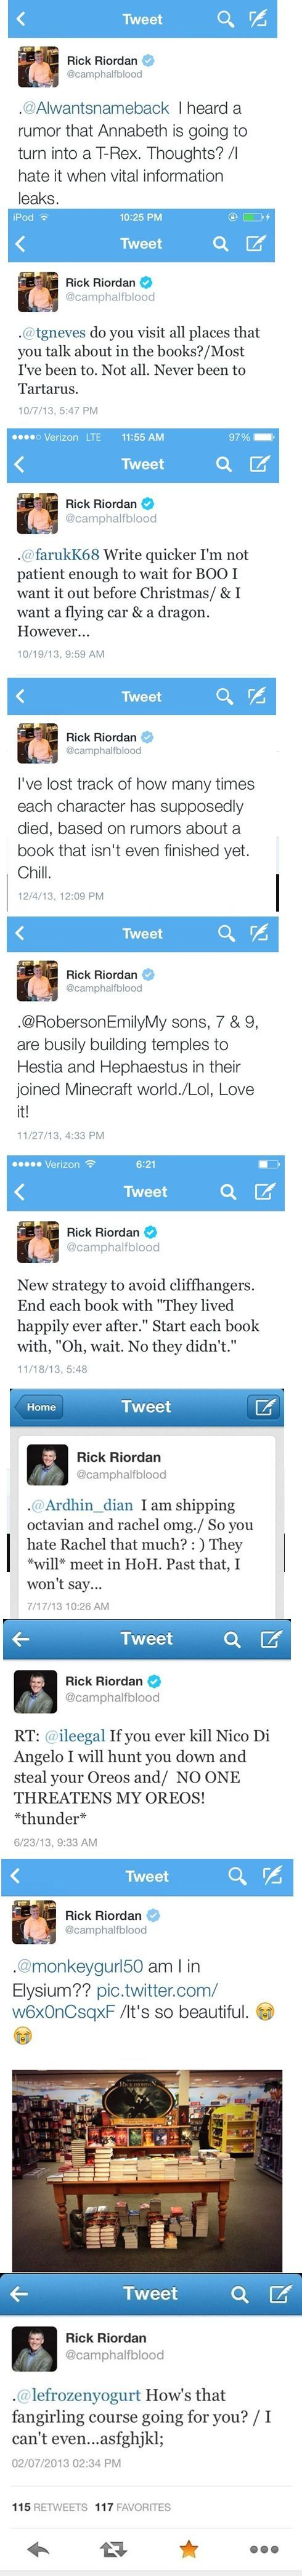 Uncle Rick, the sassiest person on earth. His tweets are enough evidence. - Don't try threatening his oreos... xD